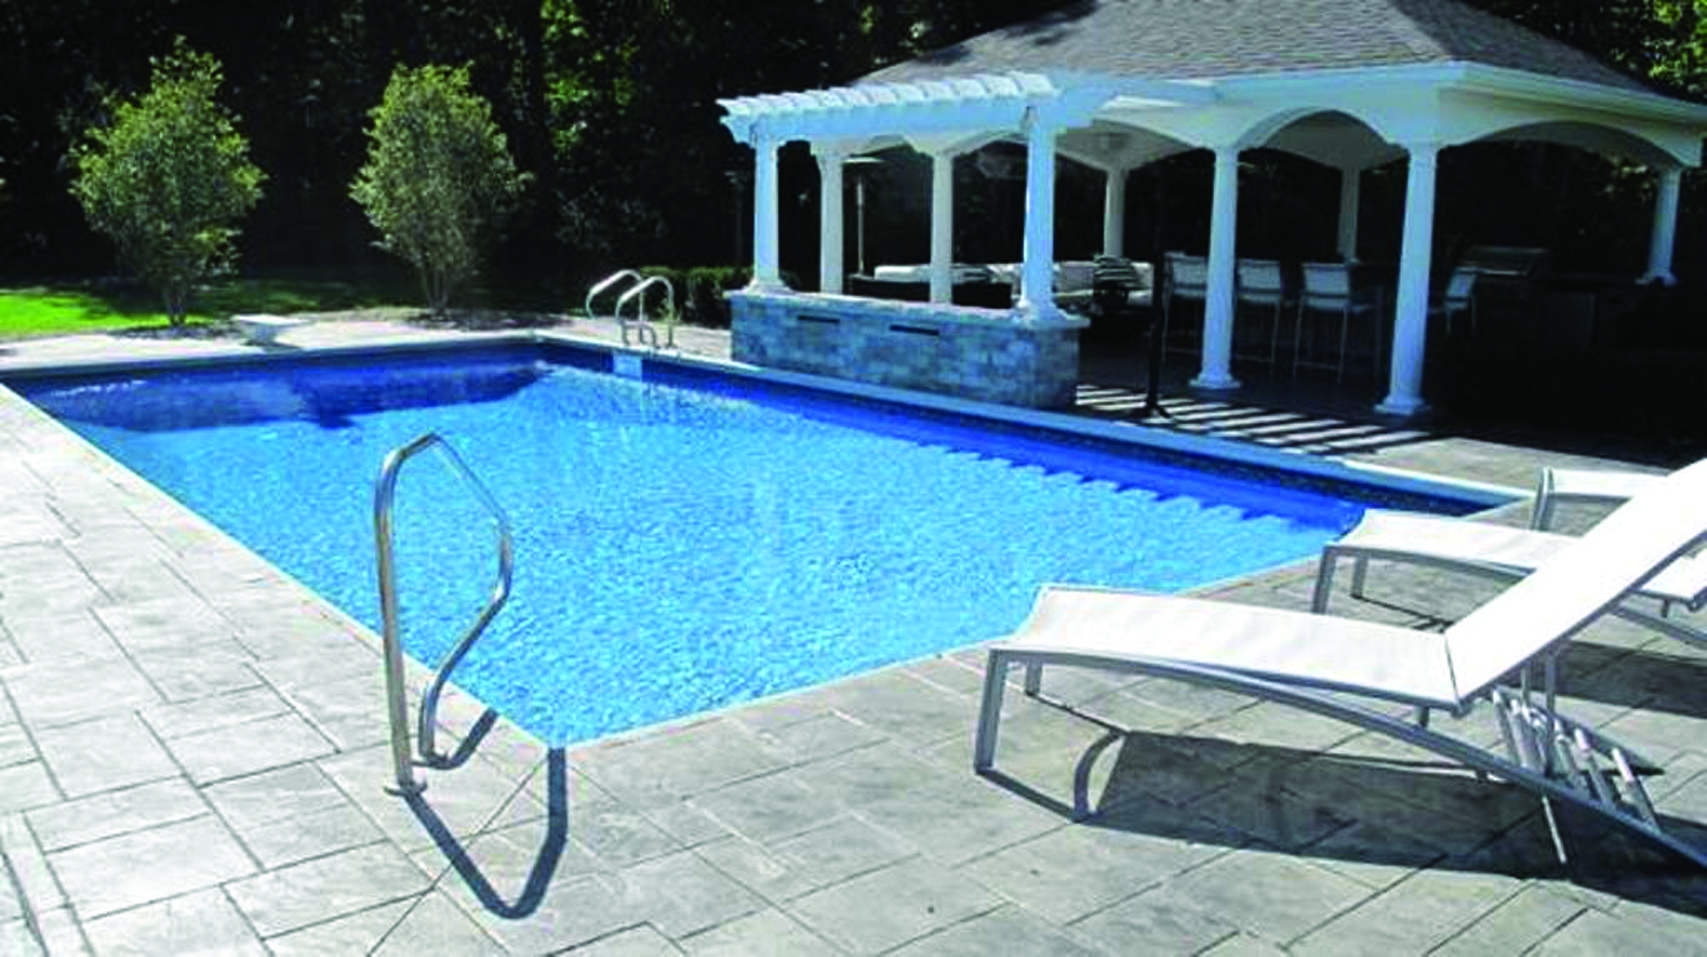 Fort wayne pools quality pools spas by dick mackey - Swimming pools fort wayne indiana ...